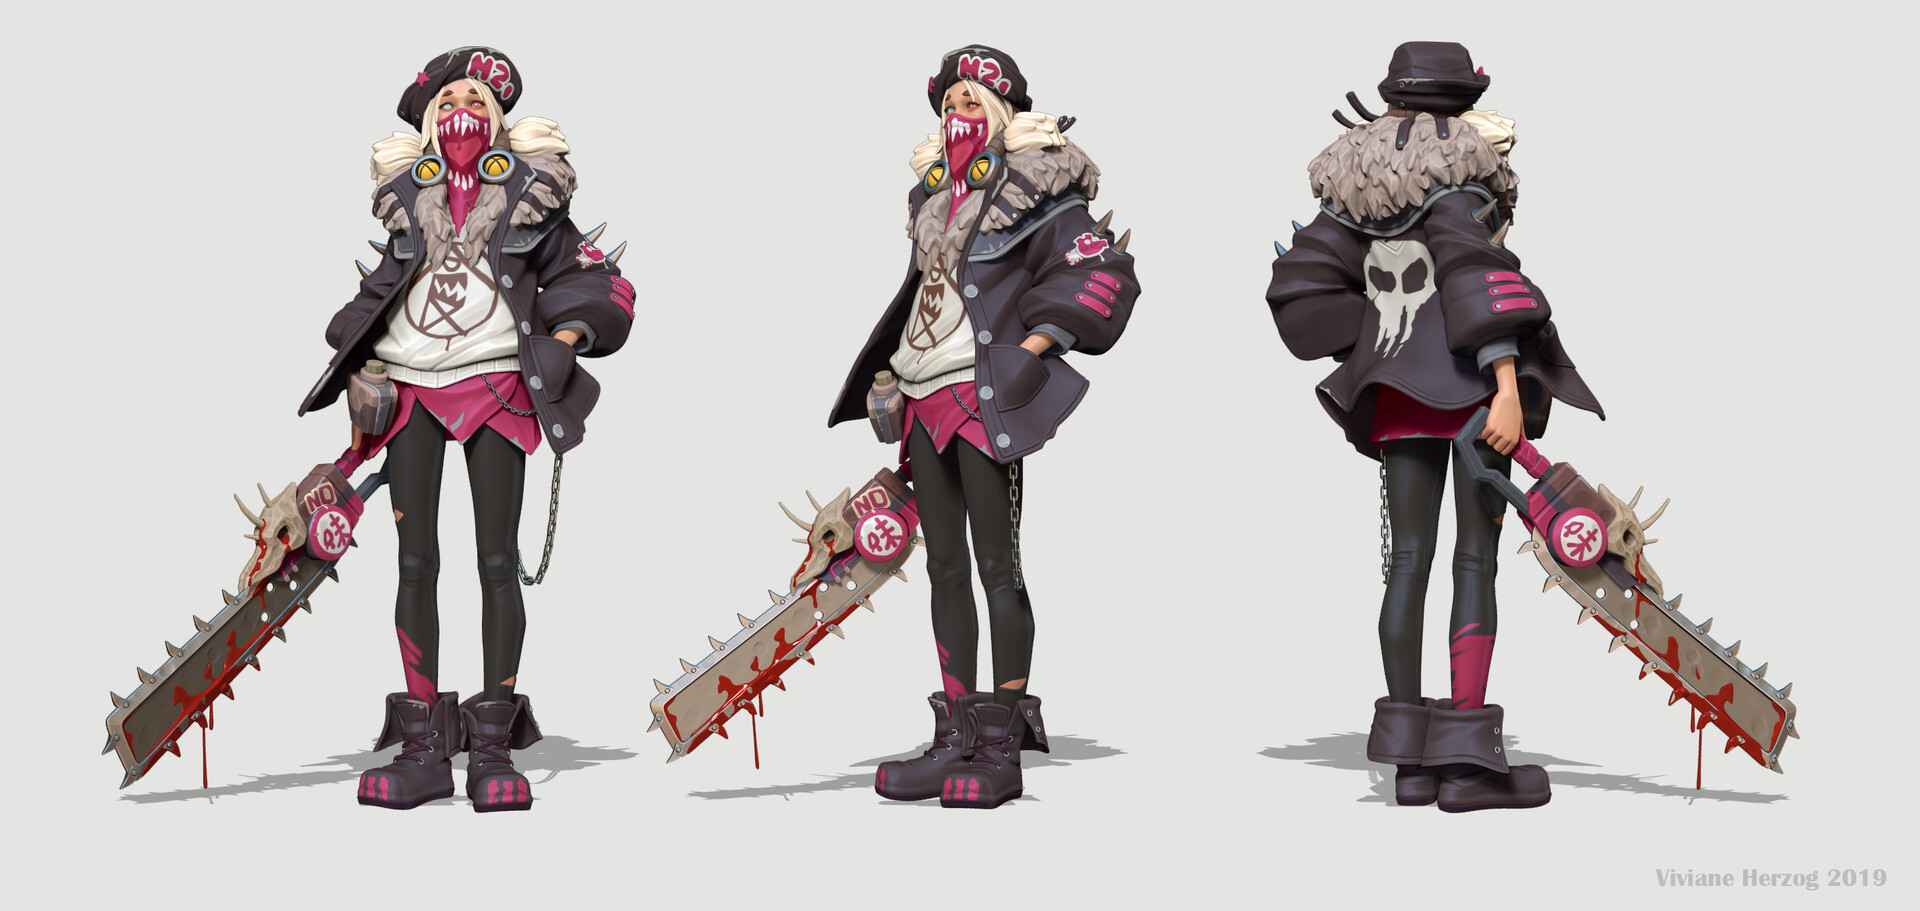 Viviane herzog chainsaw zb color